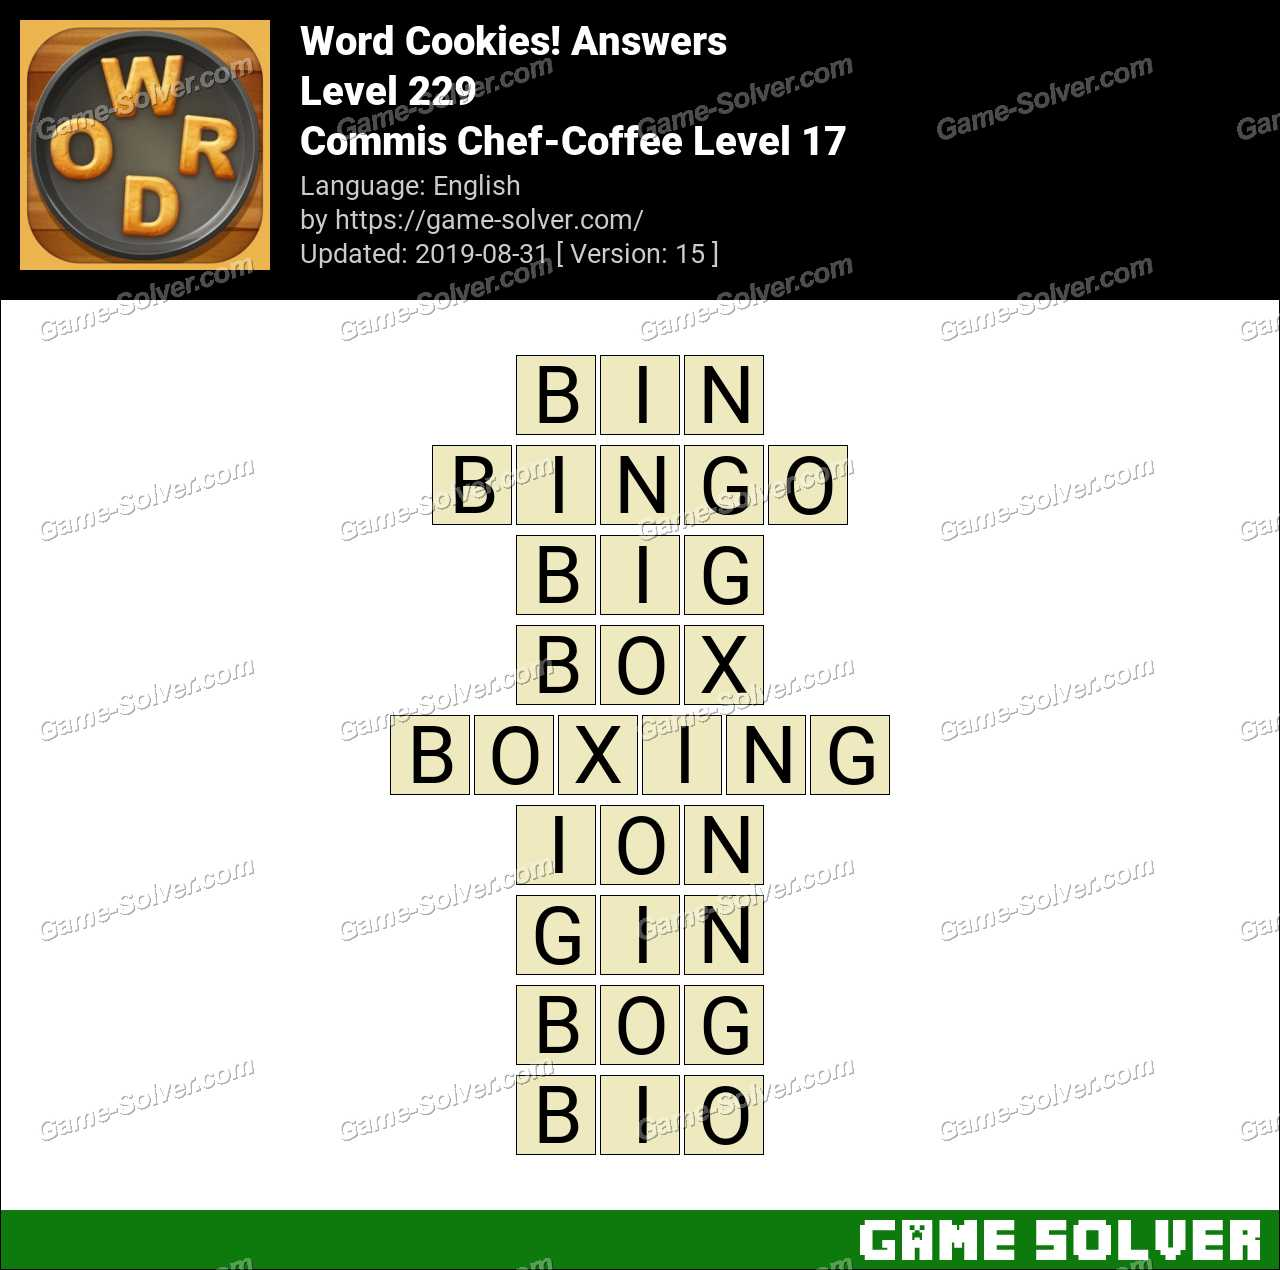 Word Cookies Commis Chef-Coffee Level 17 Answers